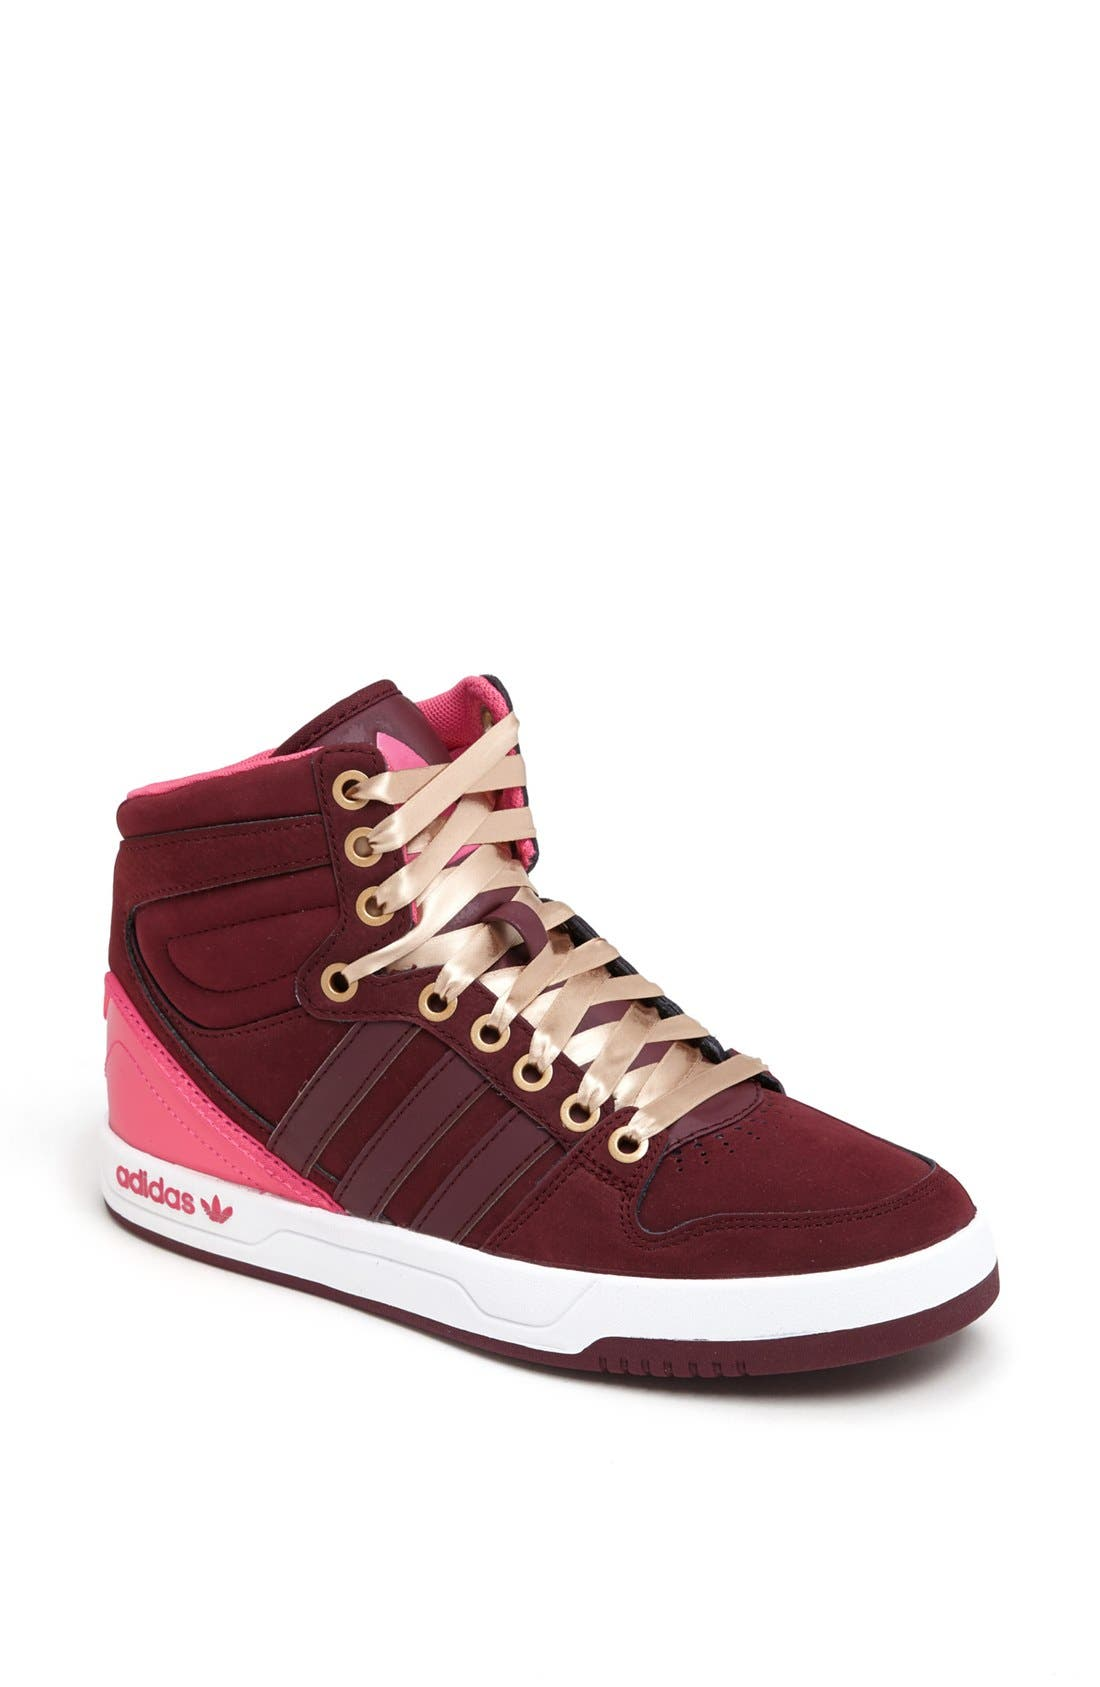 Alternate Image 1 Selected - adidas 'Court Attitude' Sneaker (Women)